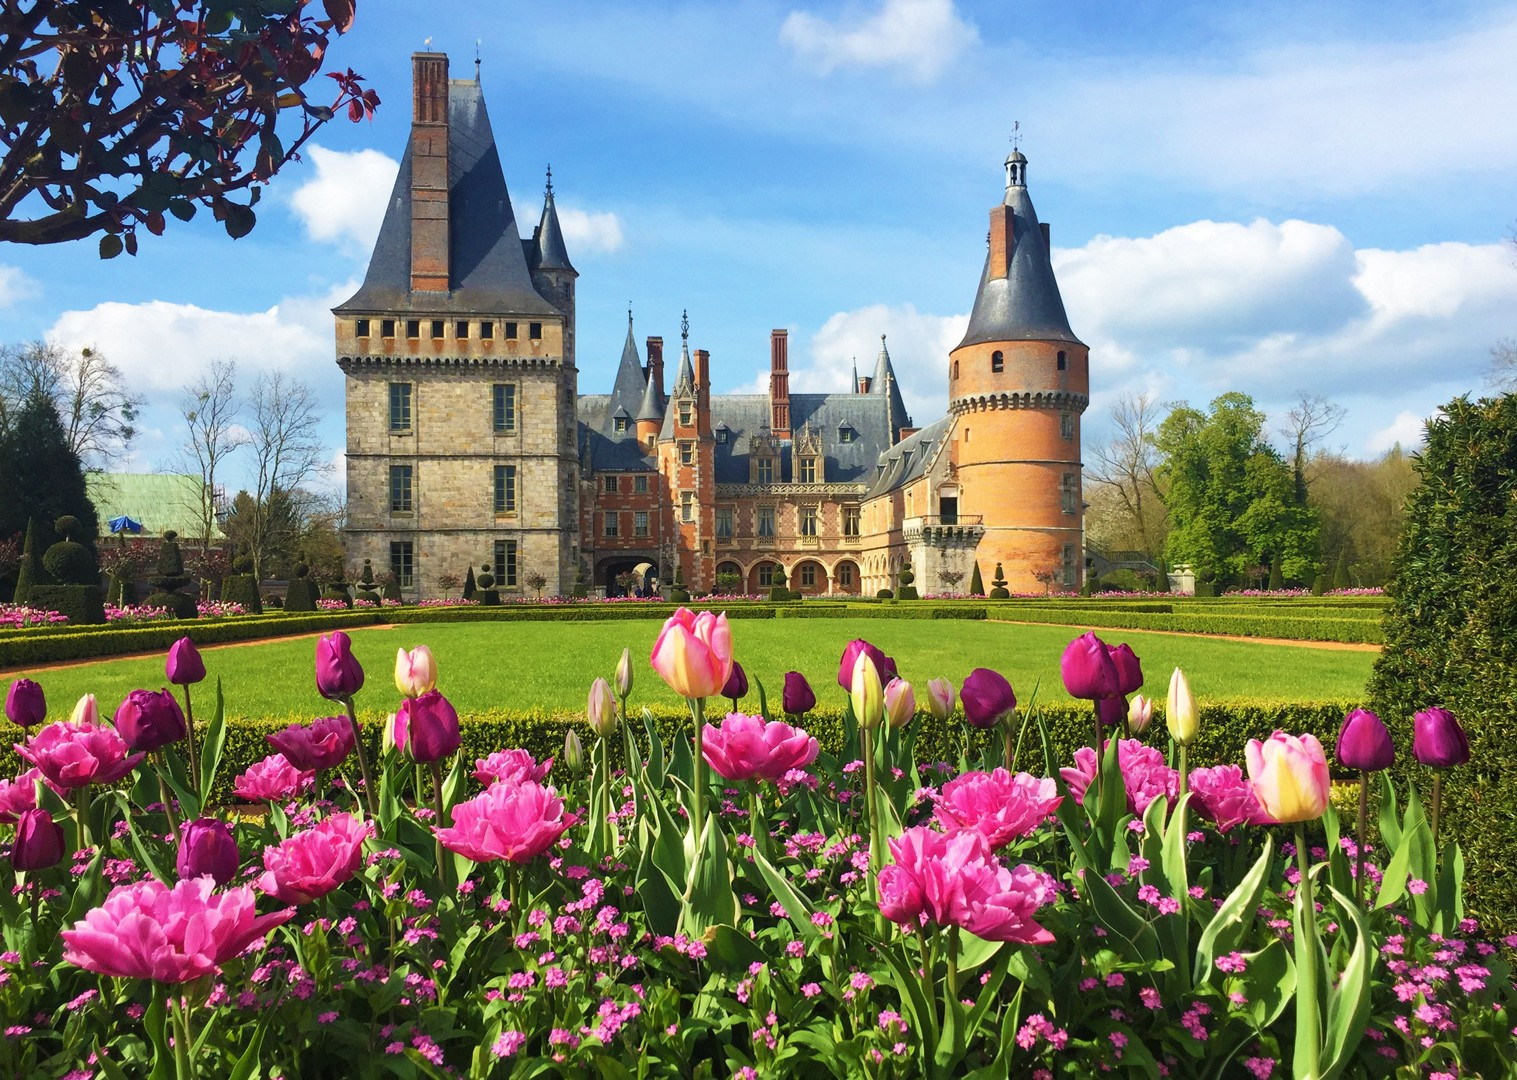 french-chateaux-france-versailles-holiday-cycle.jpg - NEW! France - Versailles to Mont Saint Michel - Self-Guided Leisure Cycling Holiday - Leisure Cycling